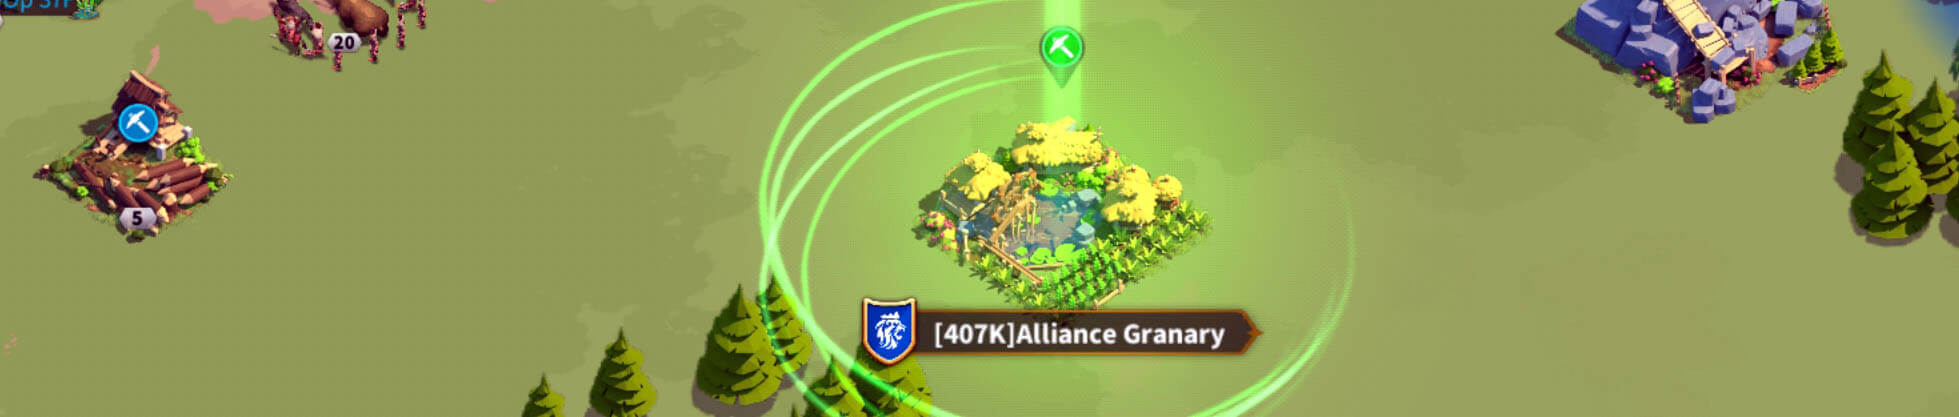 farming within alliance territory